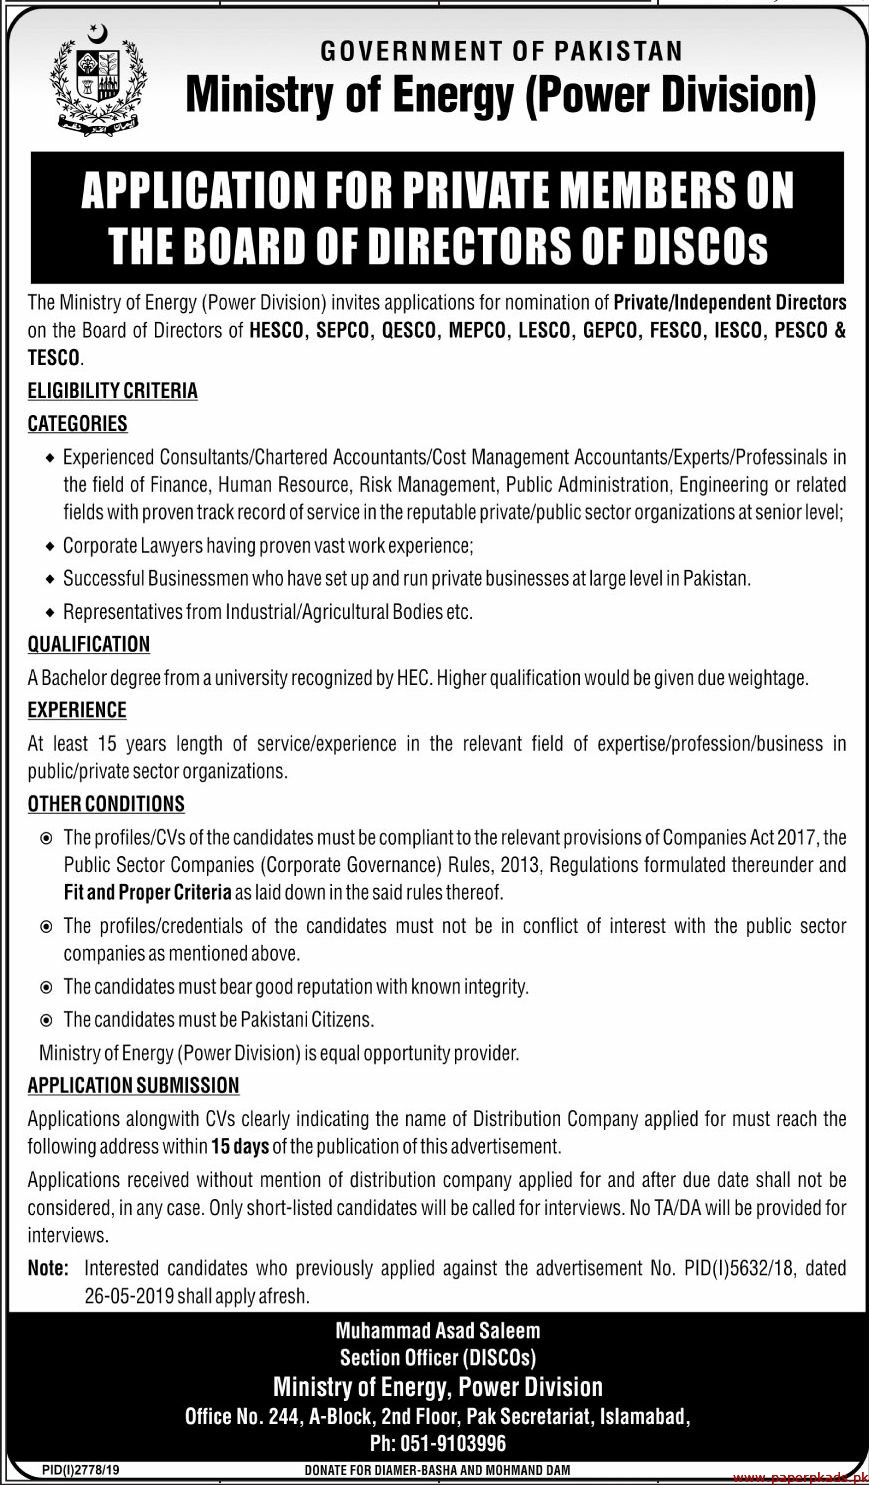 Government of Pakistan Ministry of Energy (Power Division) Jobs 2019 Latest